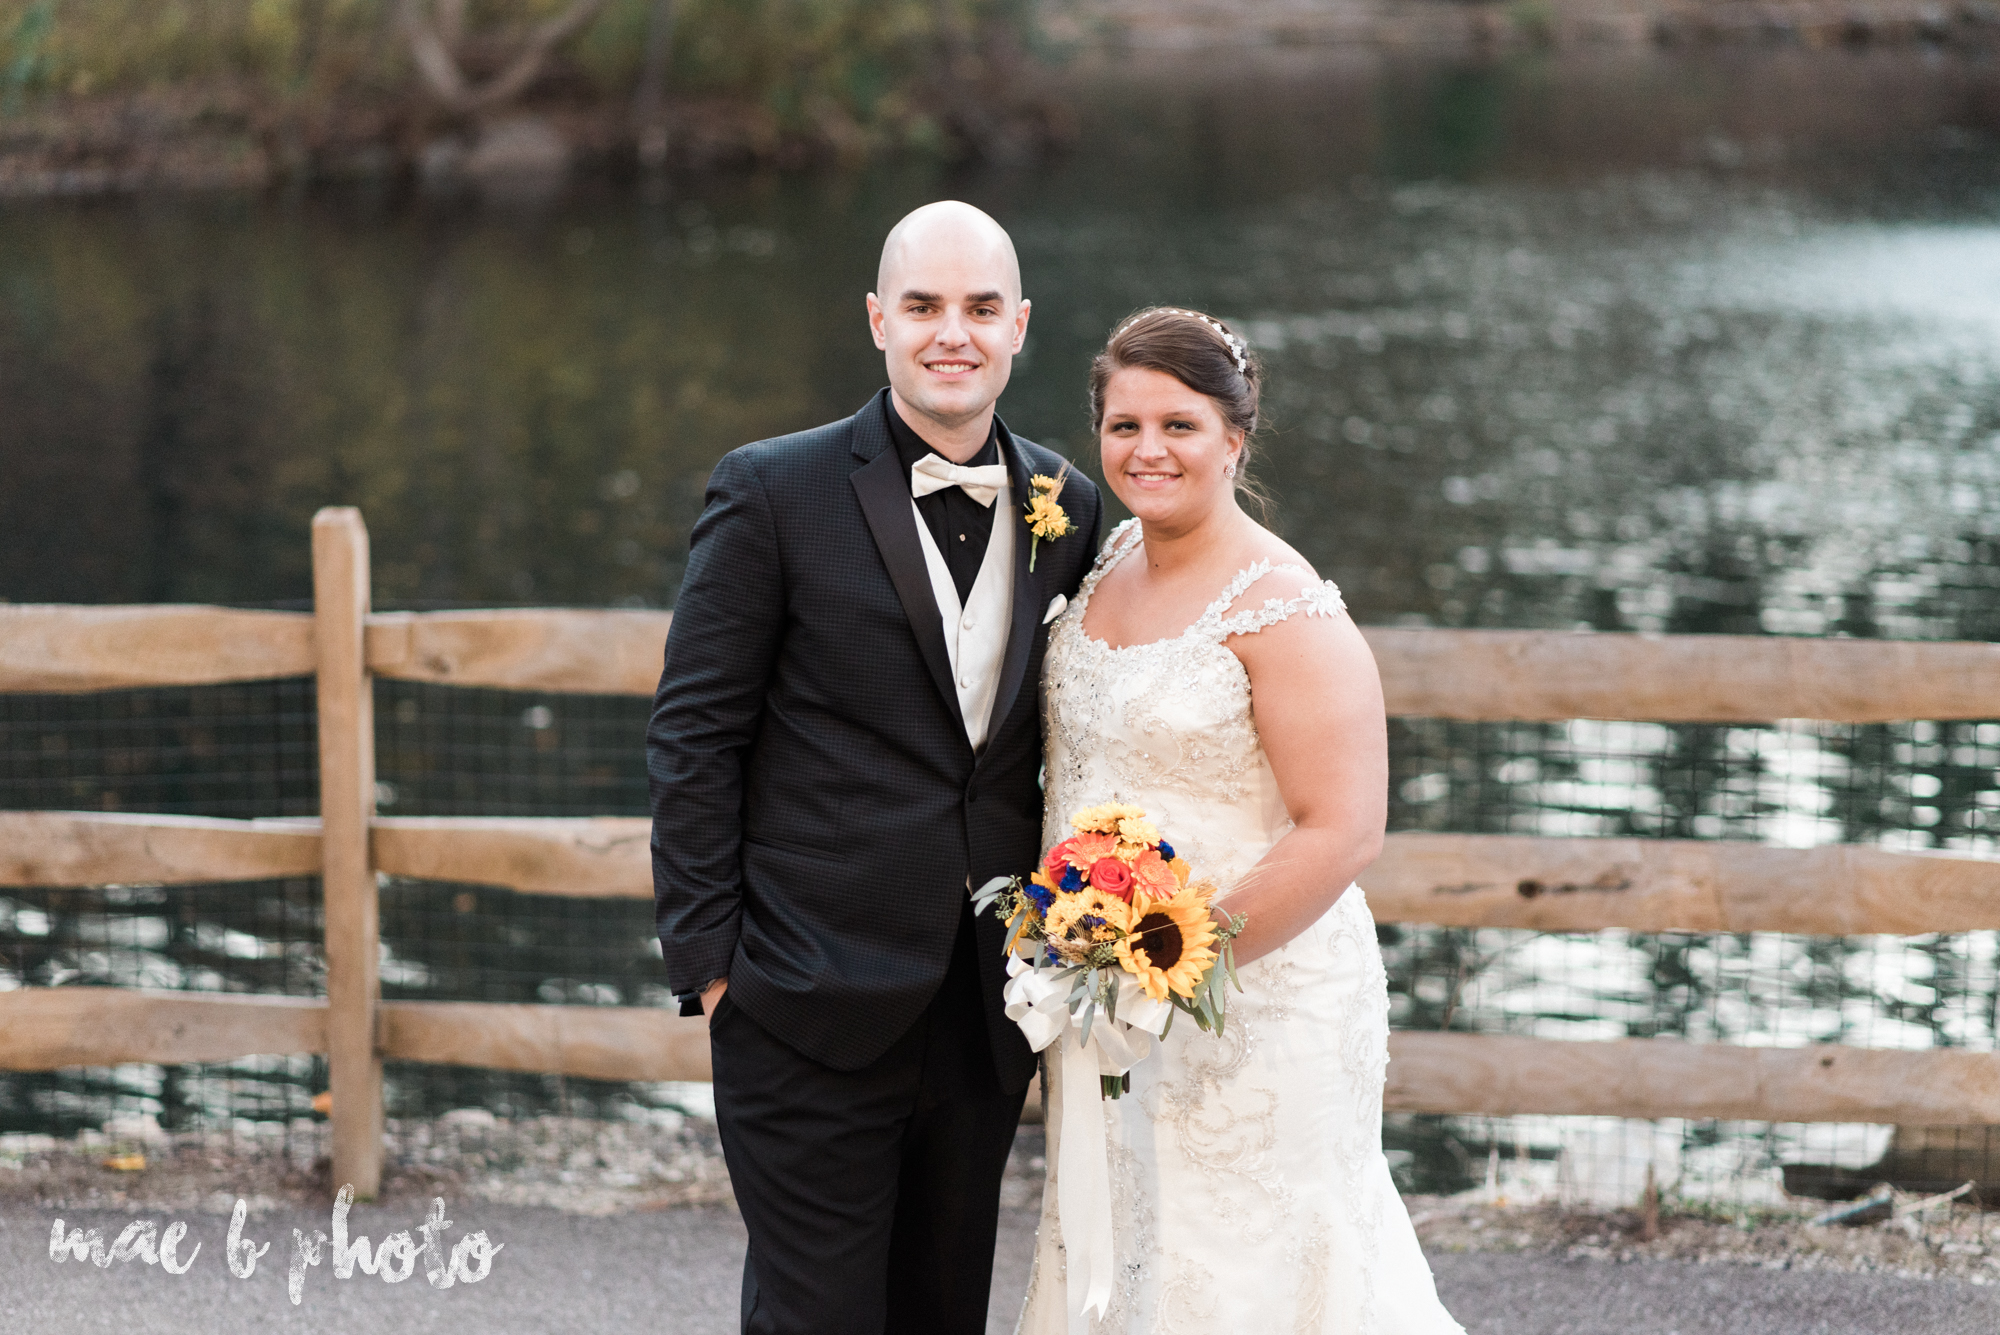 kaylynn & matt's fall zoo wedding at the cleveland metroparks zoo in cleveland ohio photographed by mae b photo-51.jpg